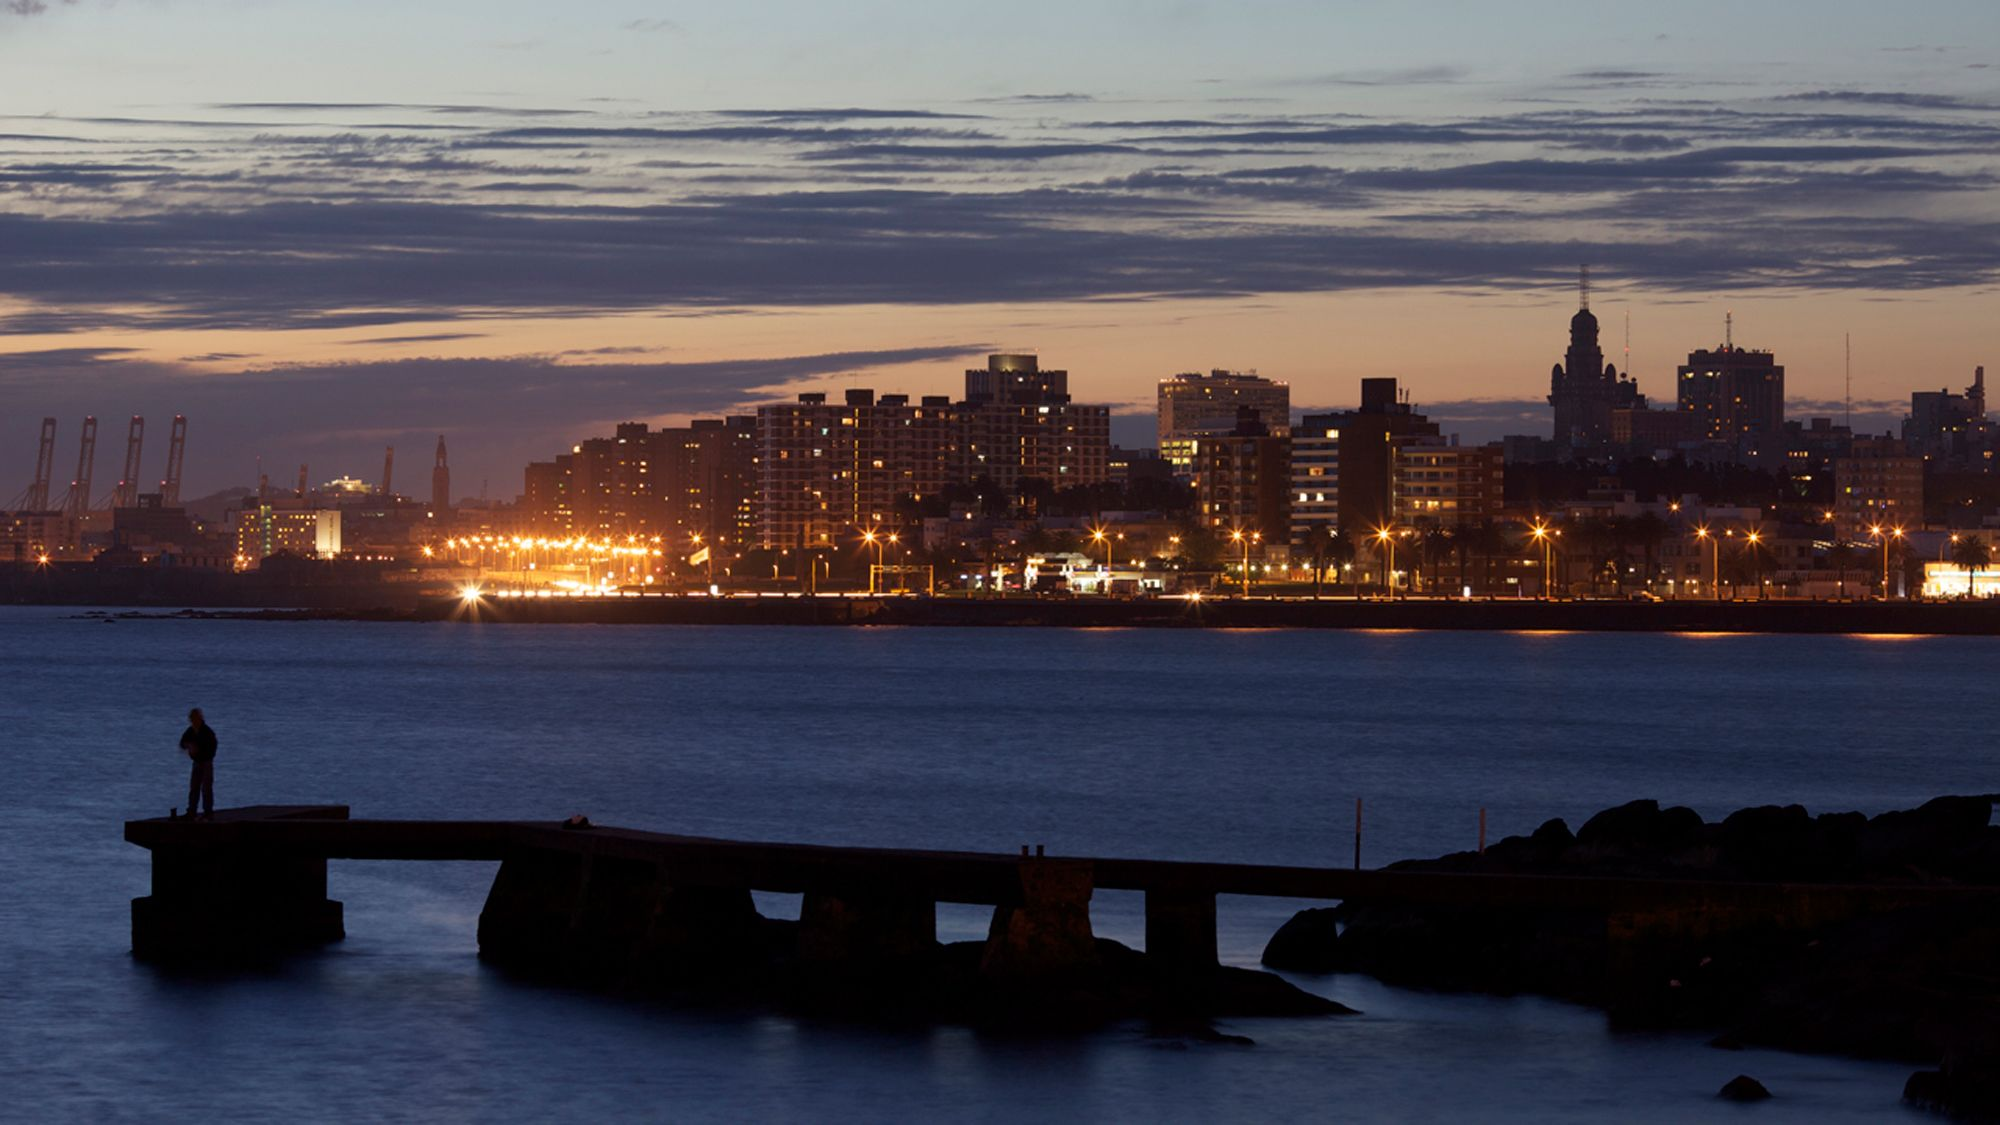 Gorgeous night view of the water and city of Montevideo